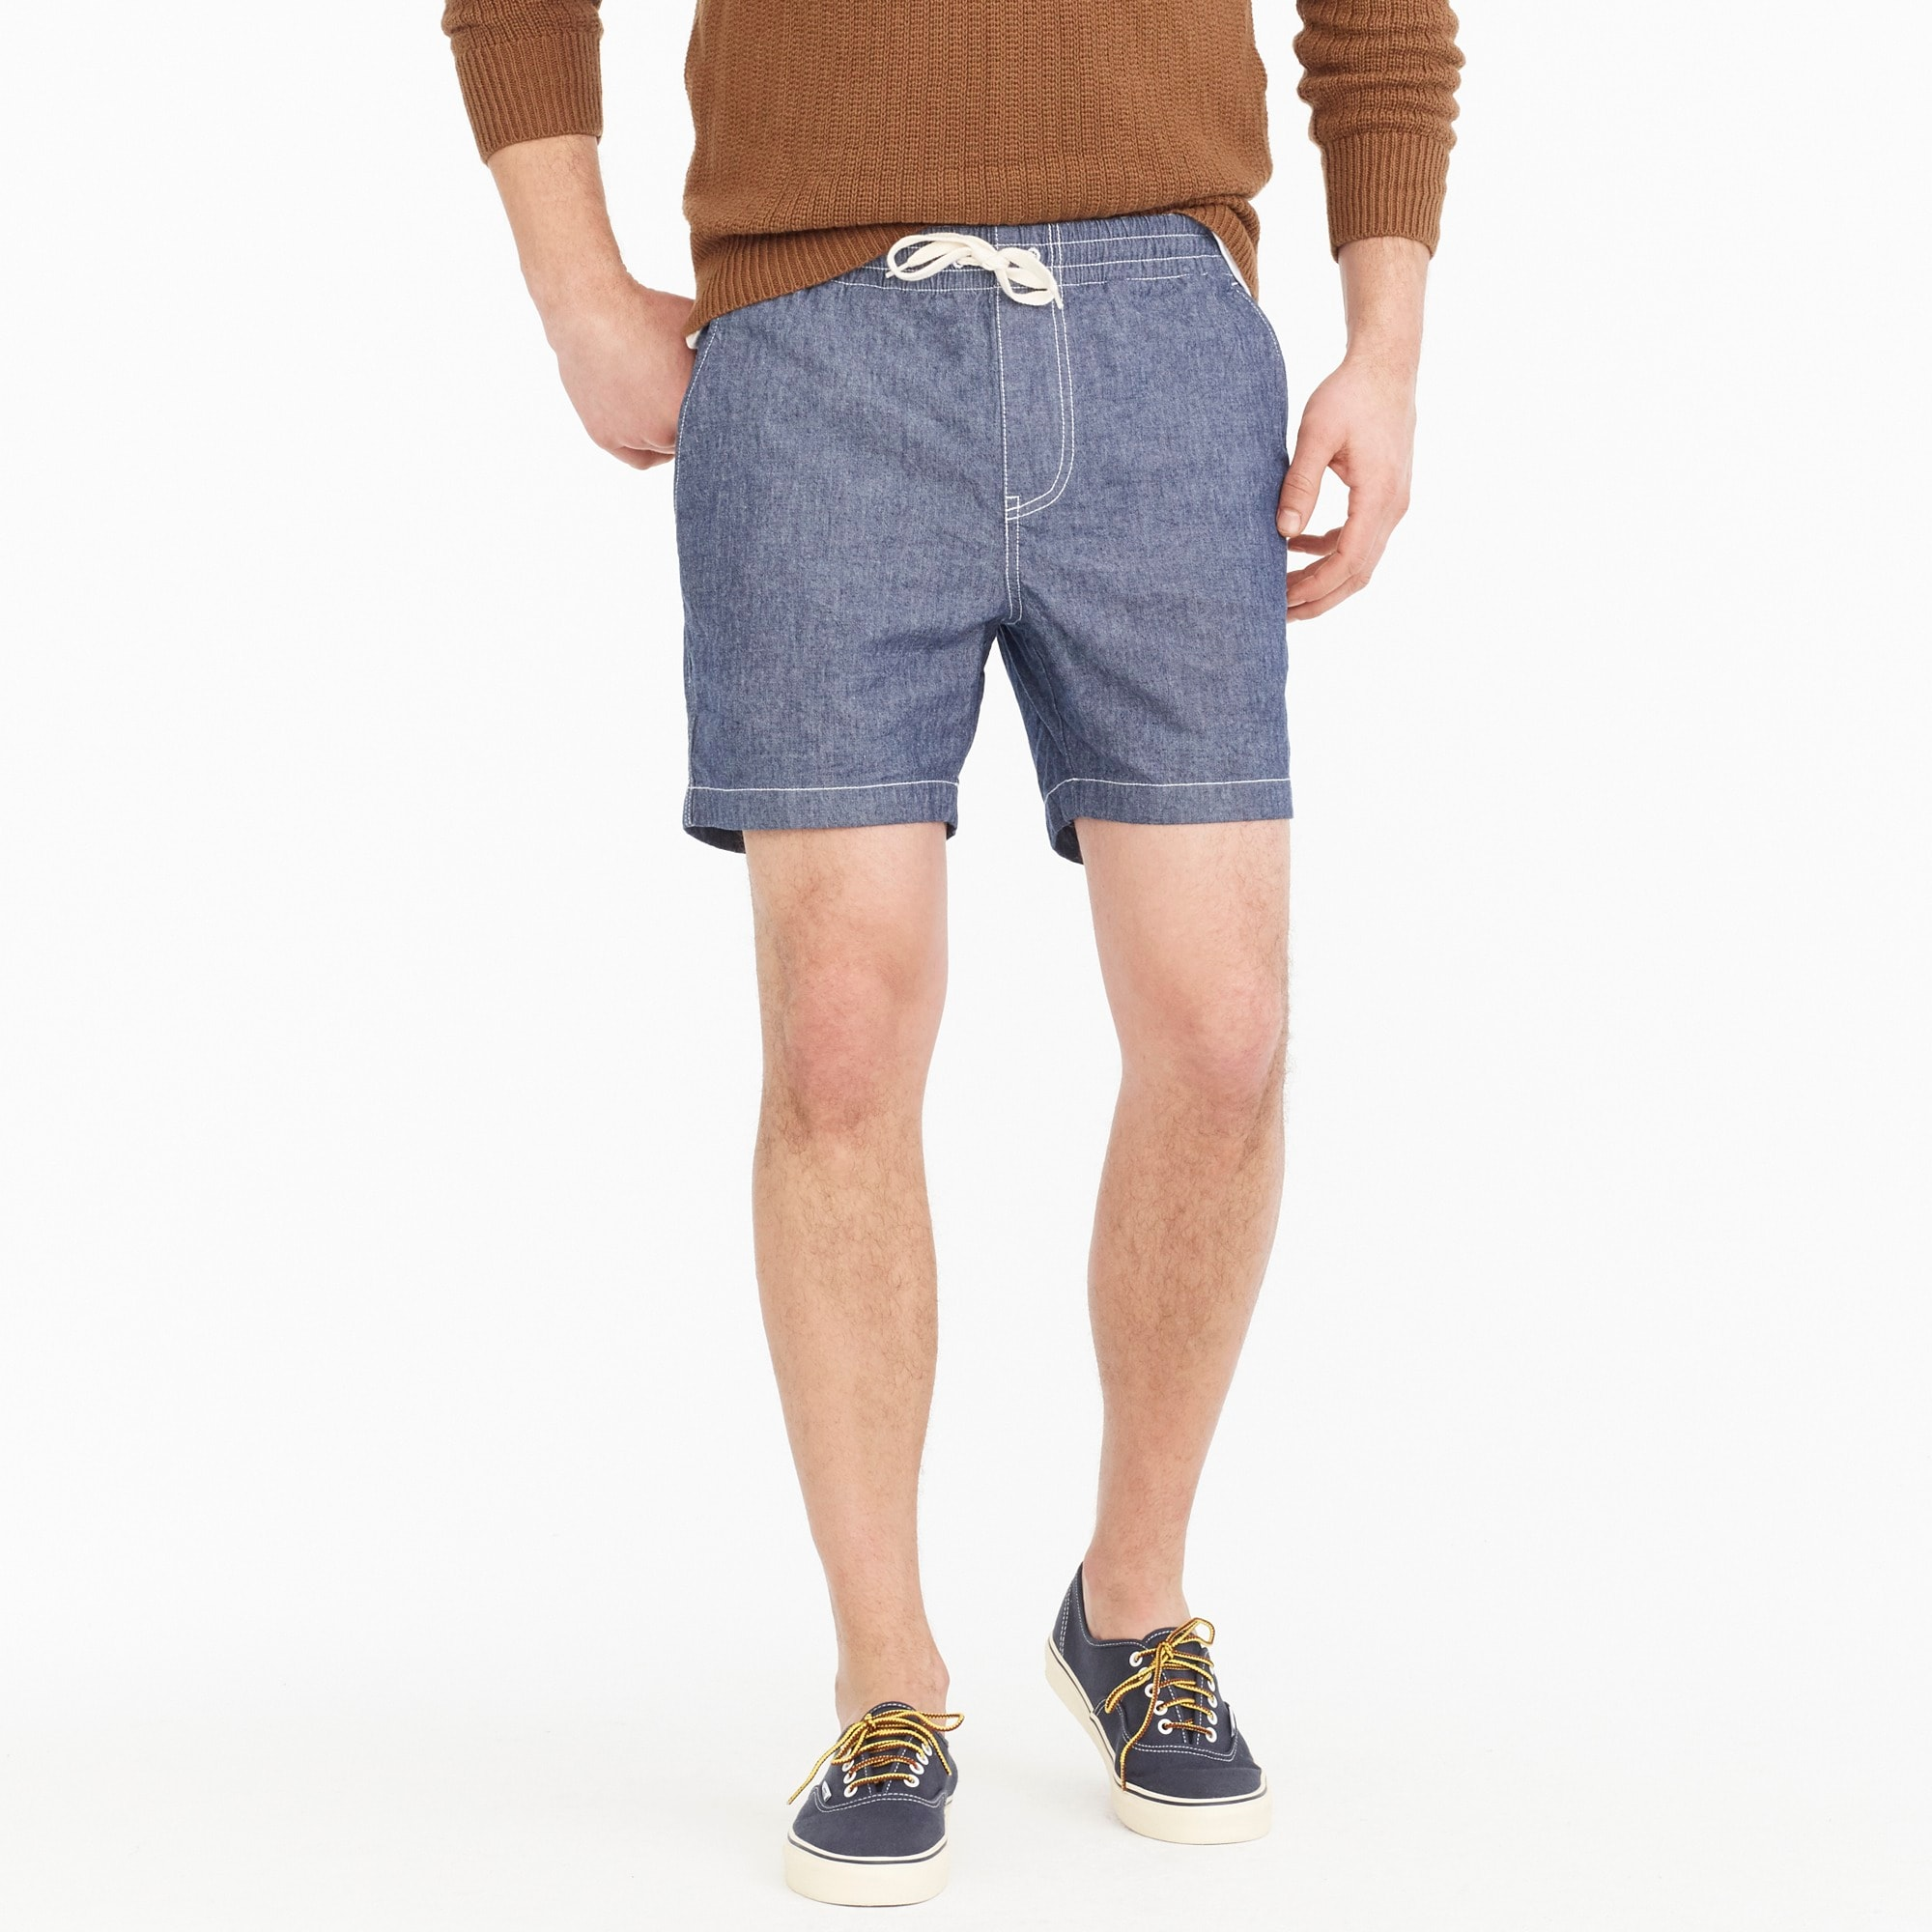 Image 1 for Stretch dock short in chambray